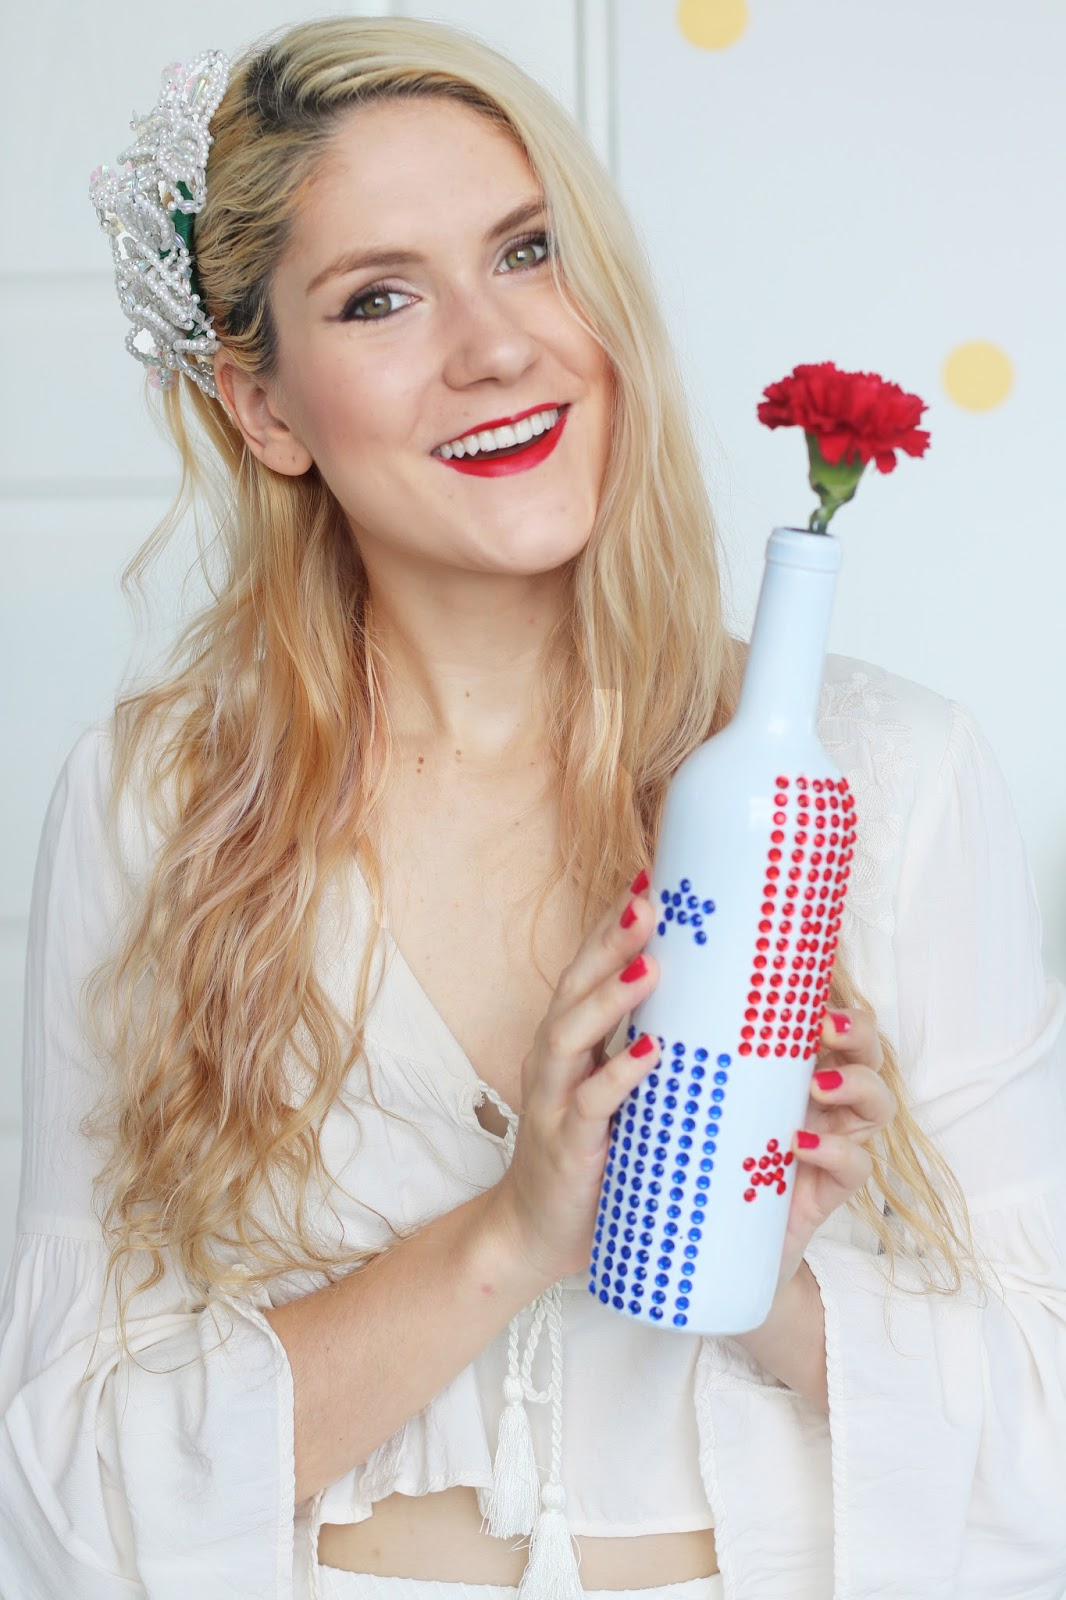 Pretty Panama flag vase tutorial for celebrating Fiestas Patrias